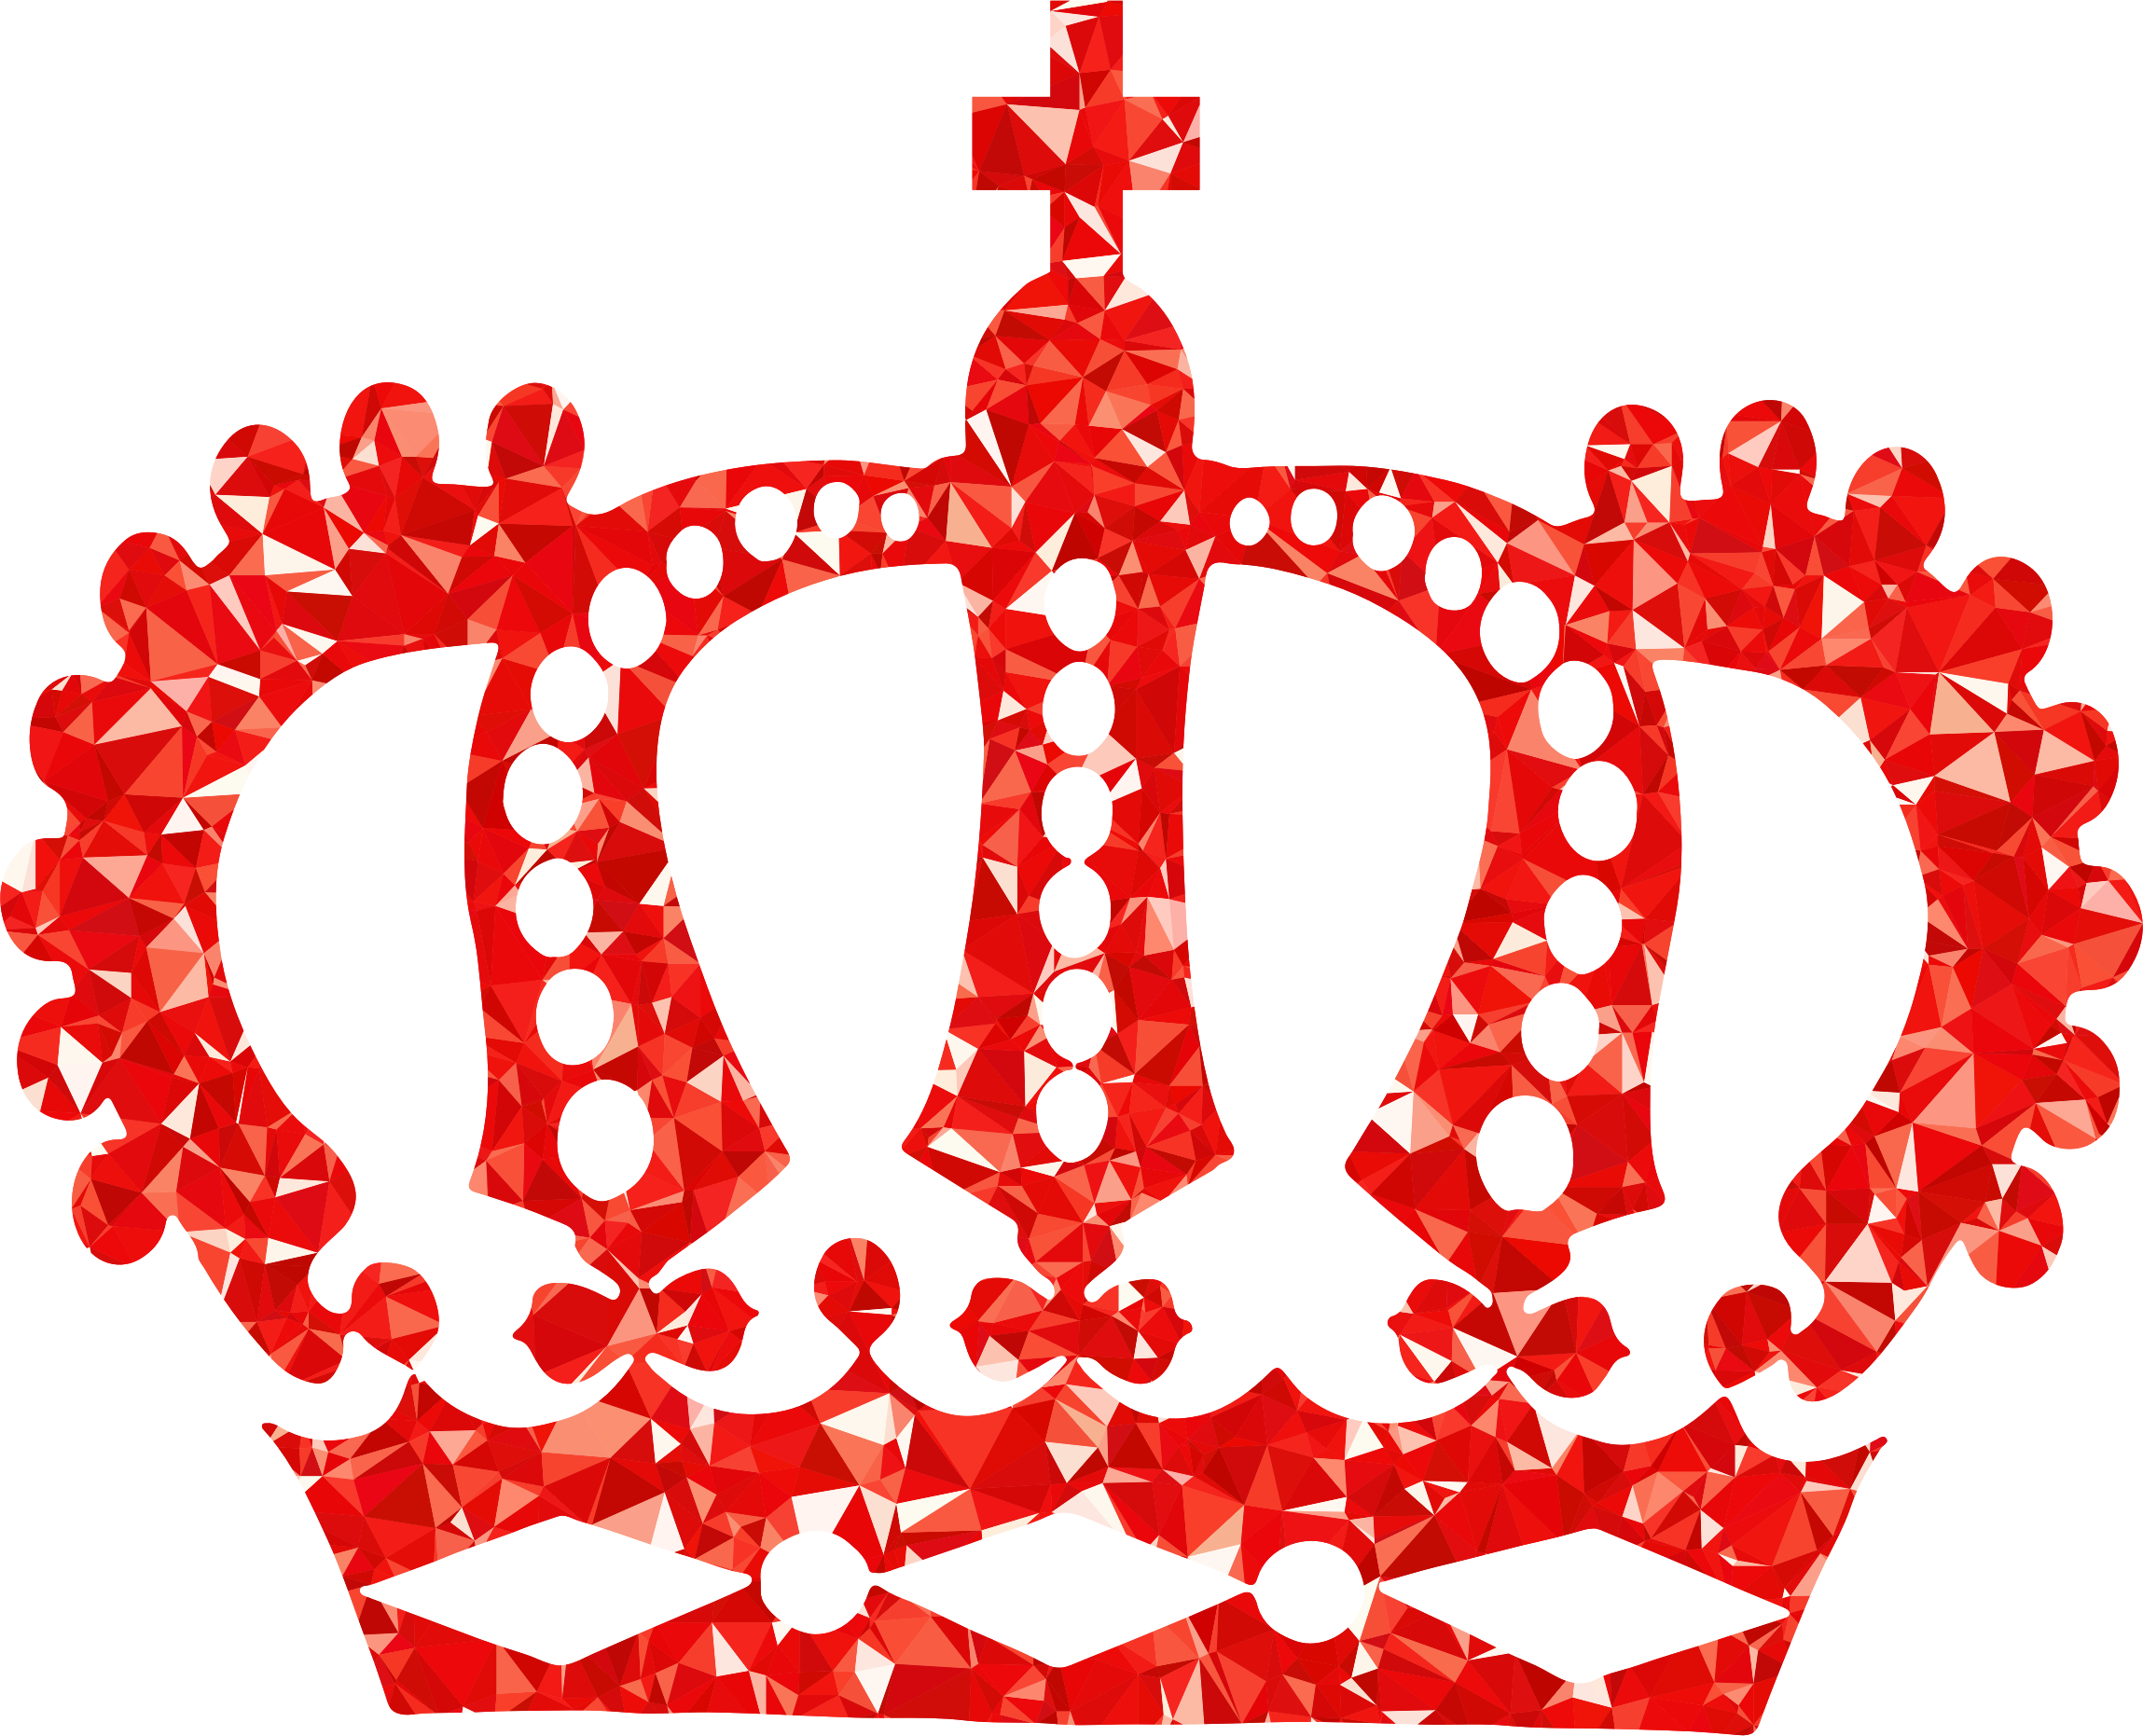 Ruby royal icons png. Crown clip colorful image download